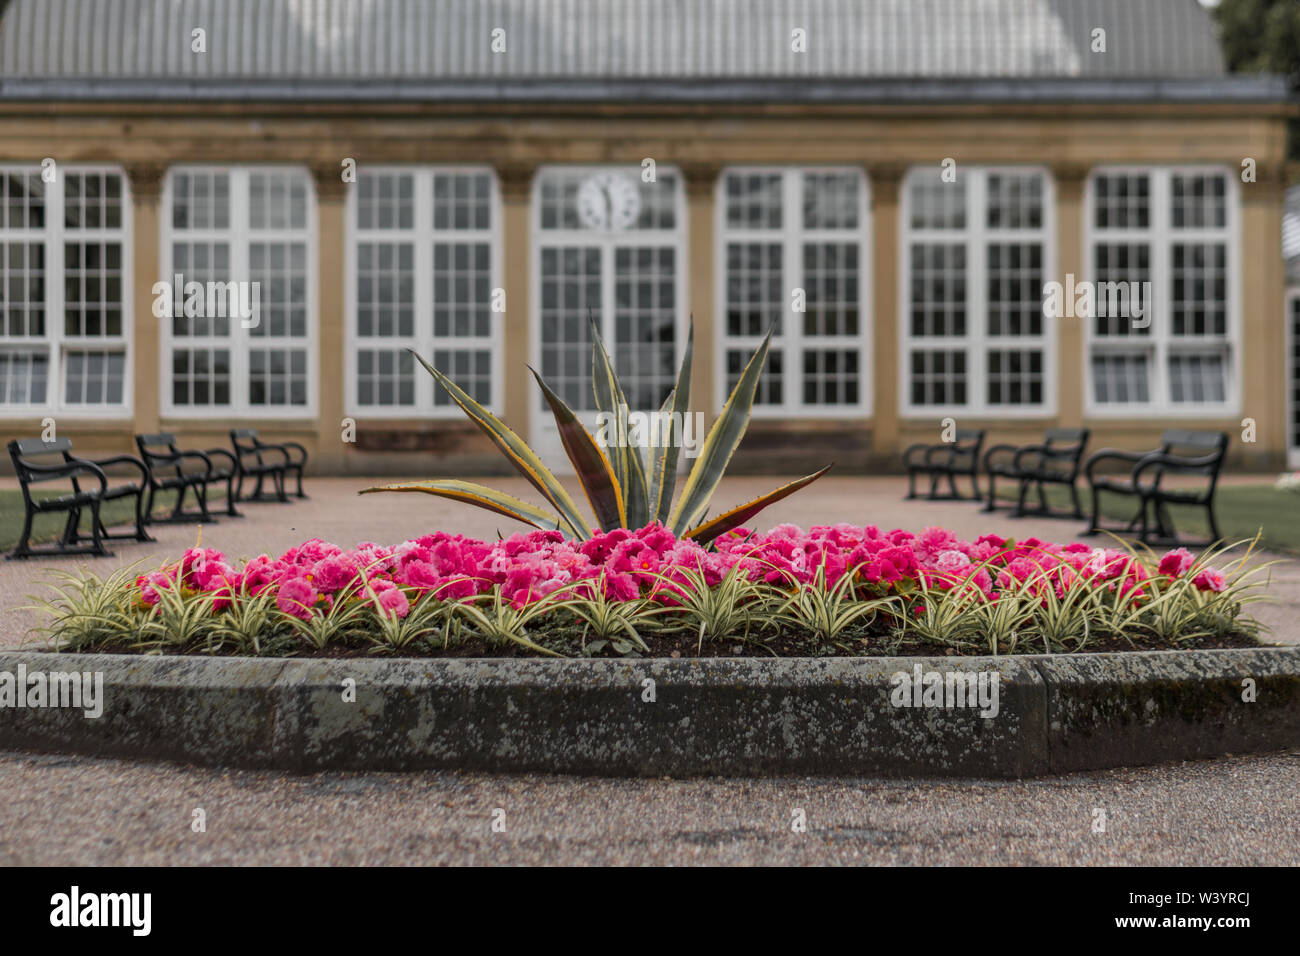 Pink Flowers on display bloom at the Sheffield Botanical Gardens, South Yorkshire, UK. Taken in Summer of 2019 Stock Photo